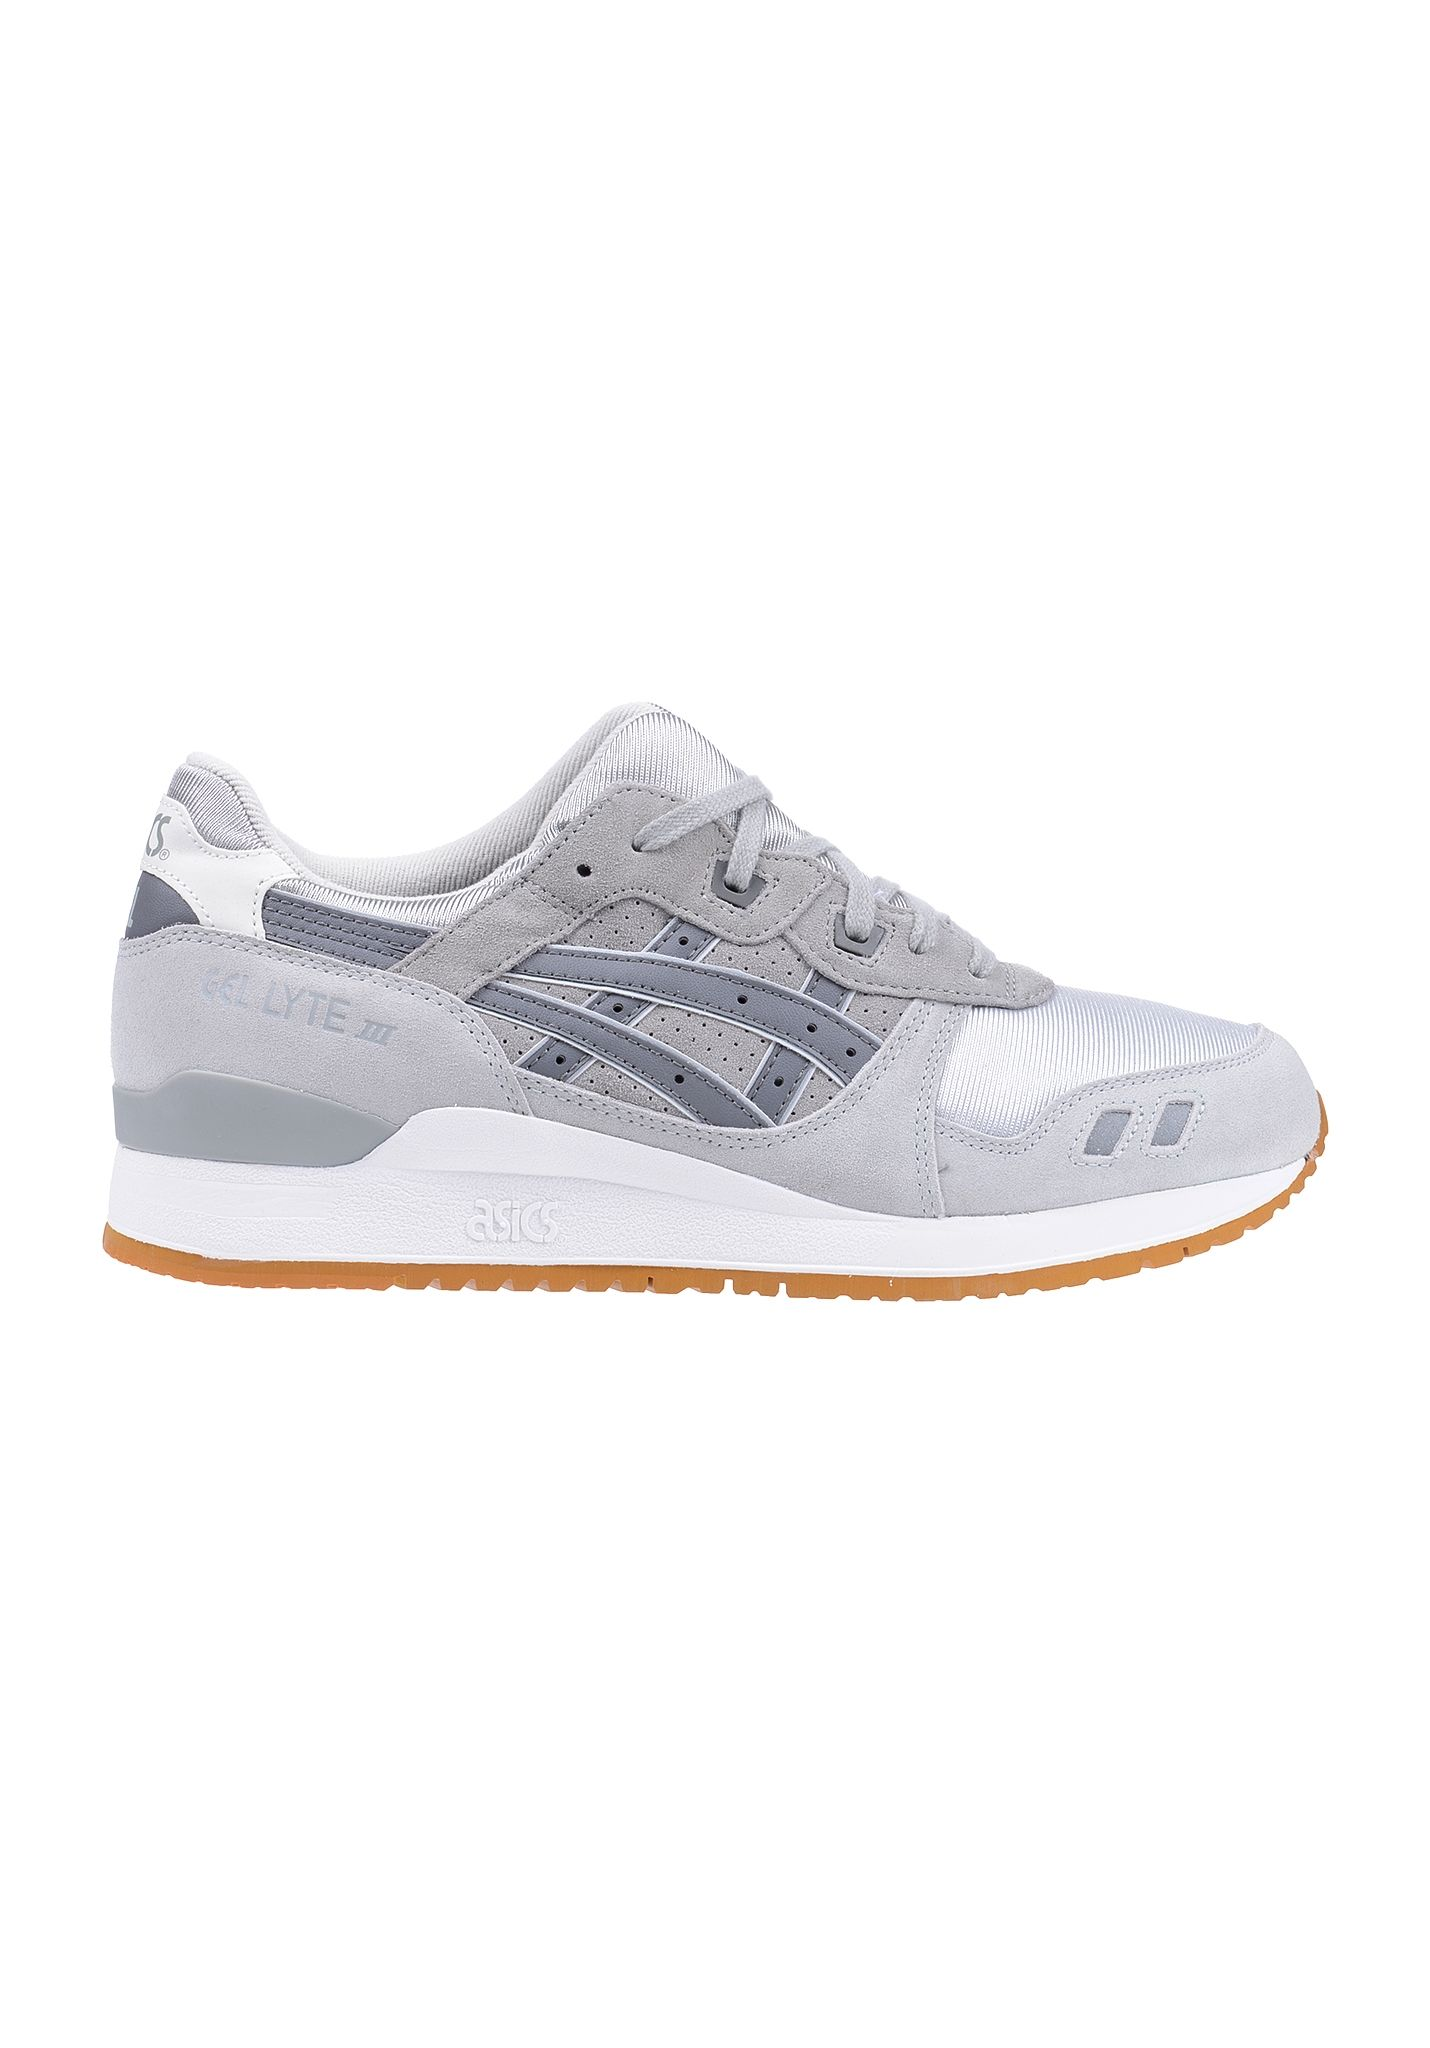 grossiste 7e73c 30085 asics gel lyte 3 grise blanche